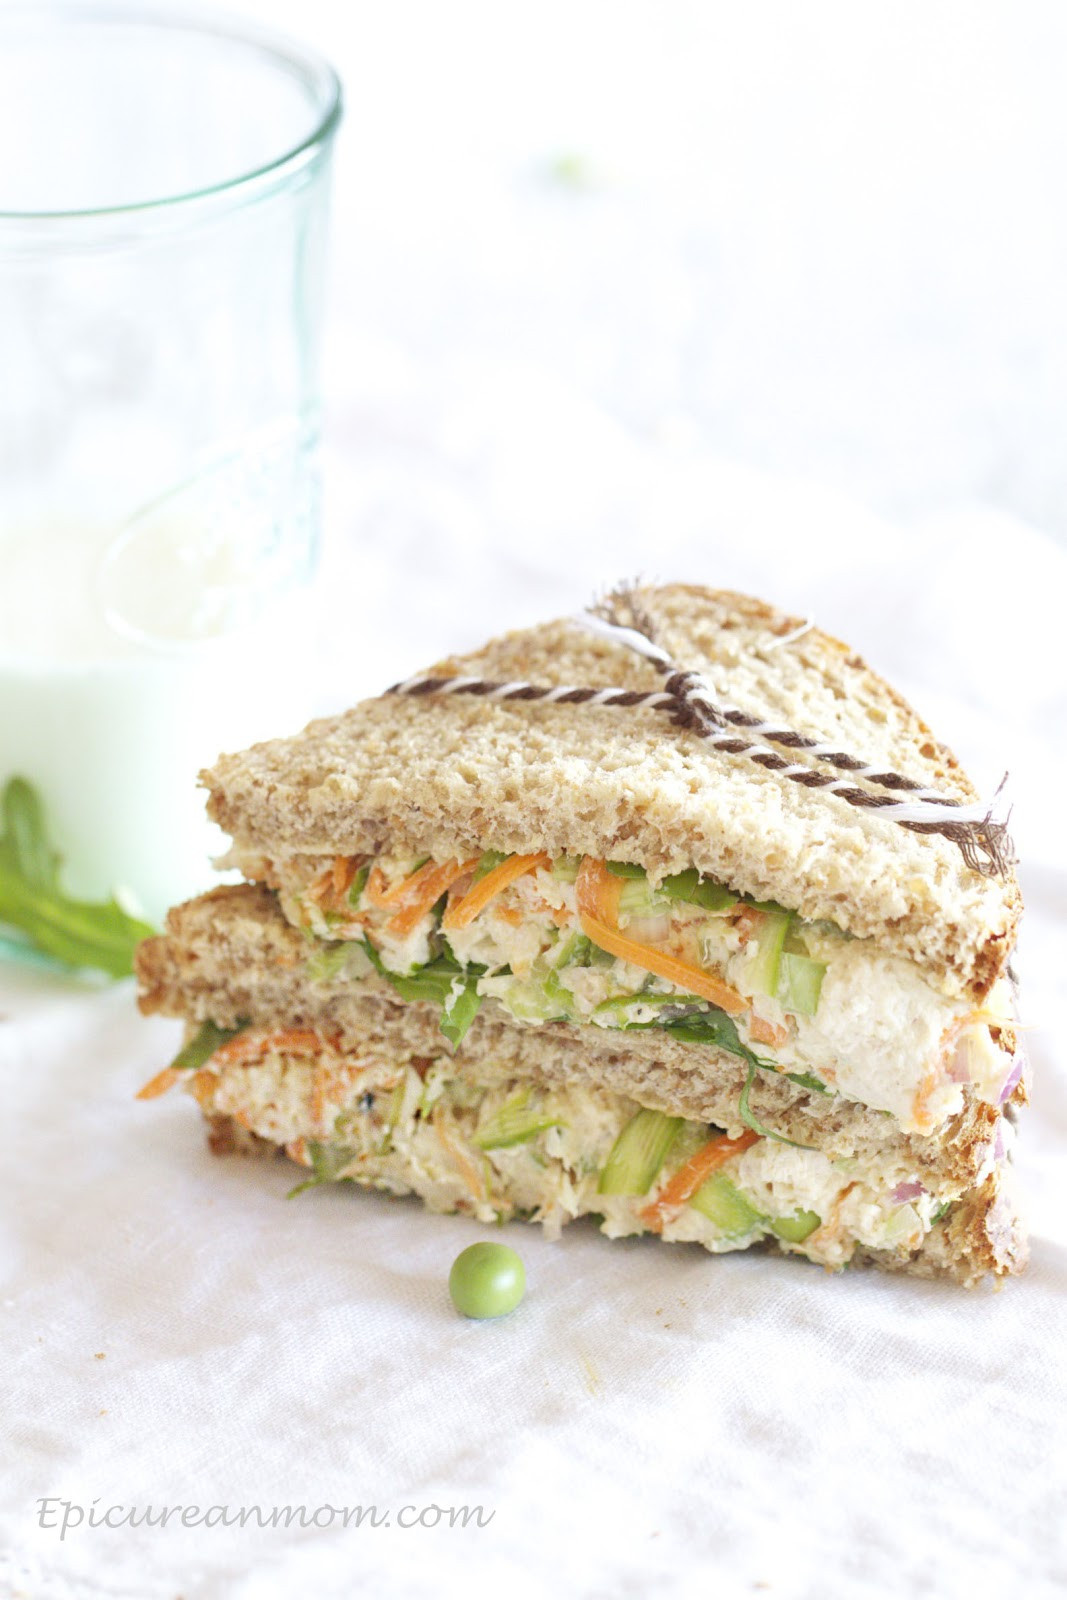 Chicken Salad Sandwiches  Epicurean Mom Healthy Chicken Salad Sandwich Recipe